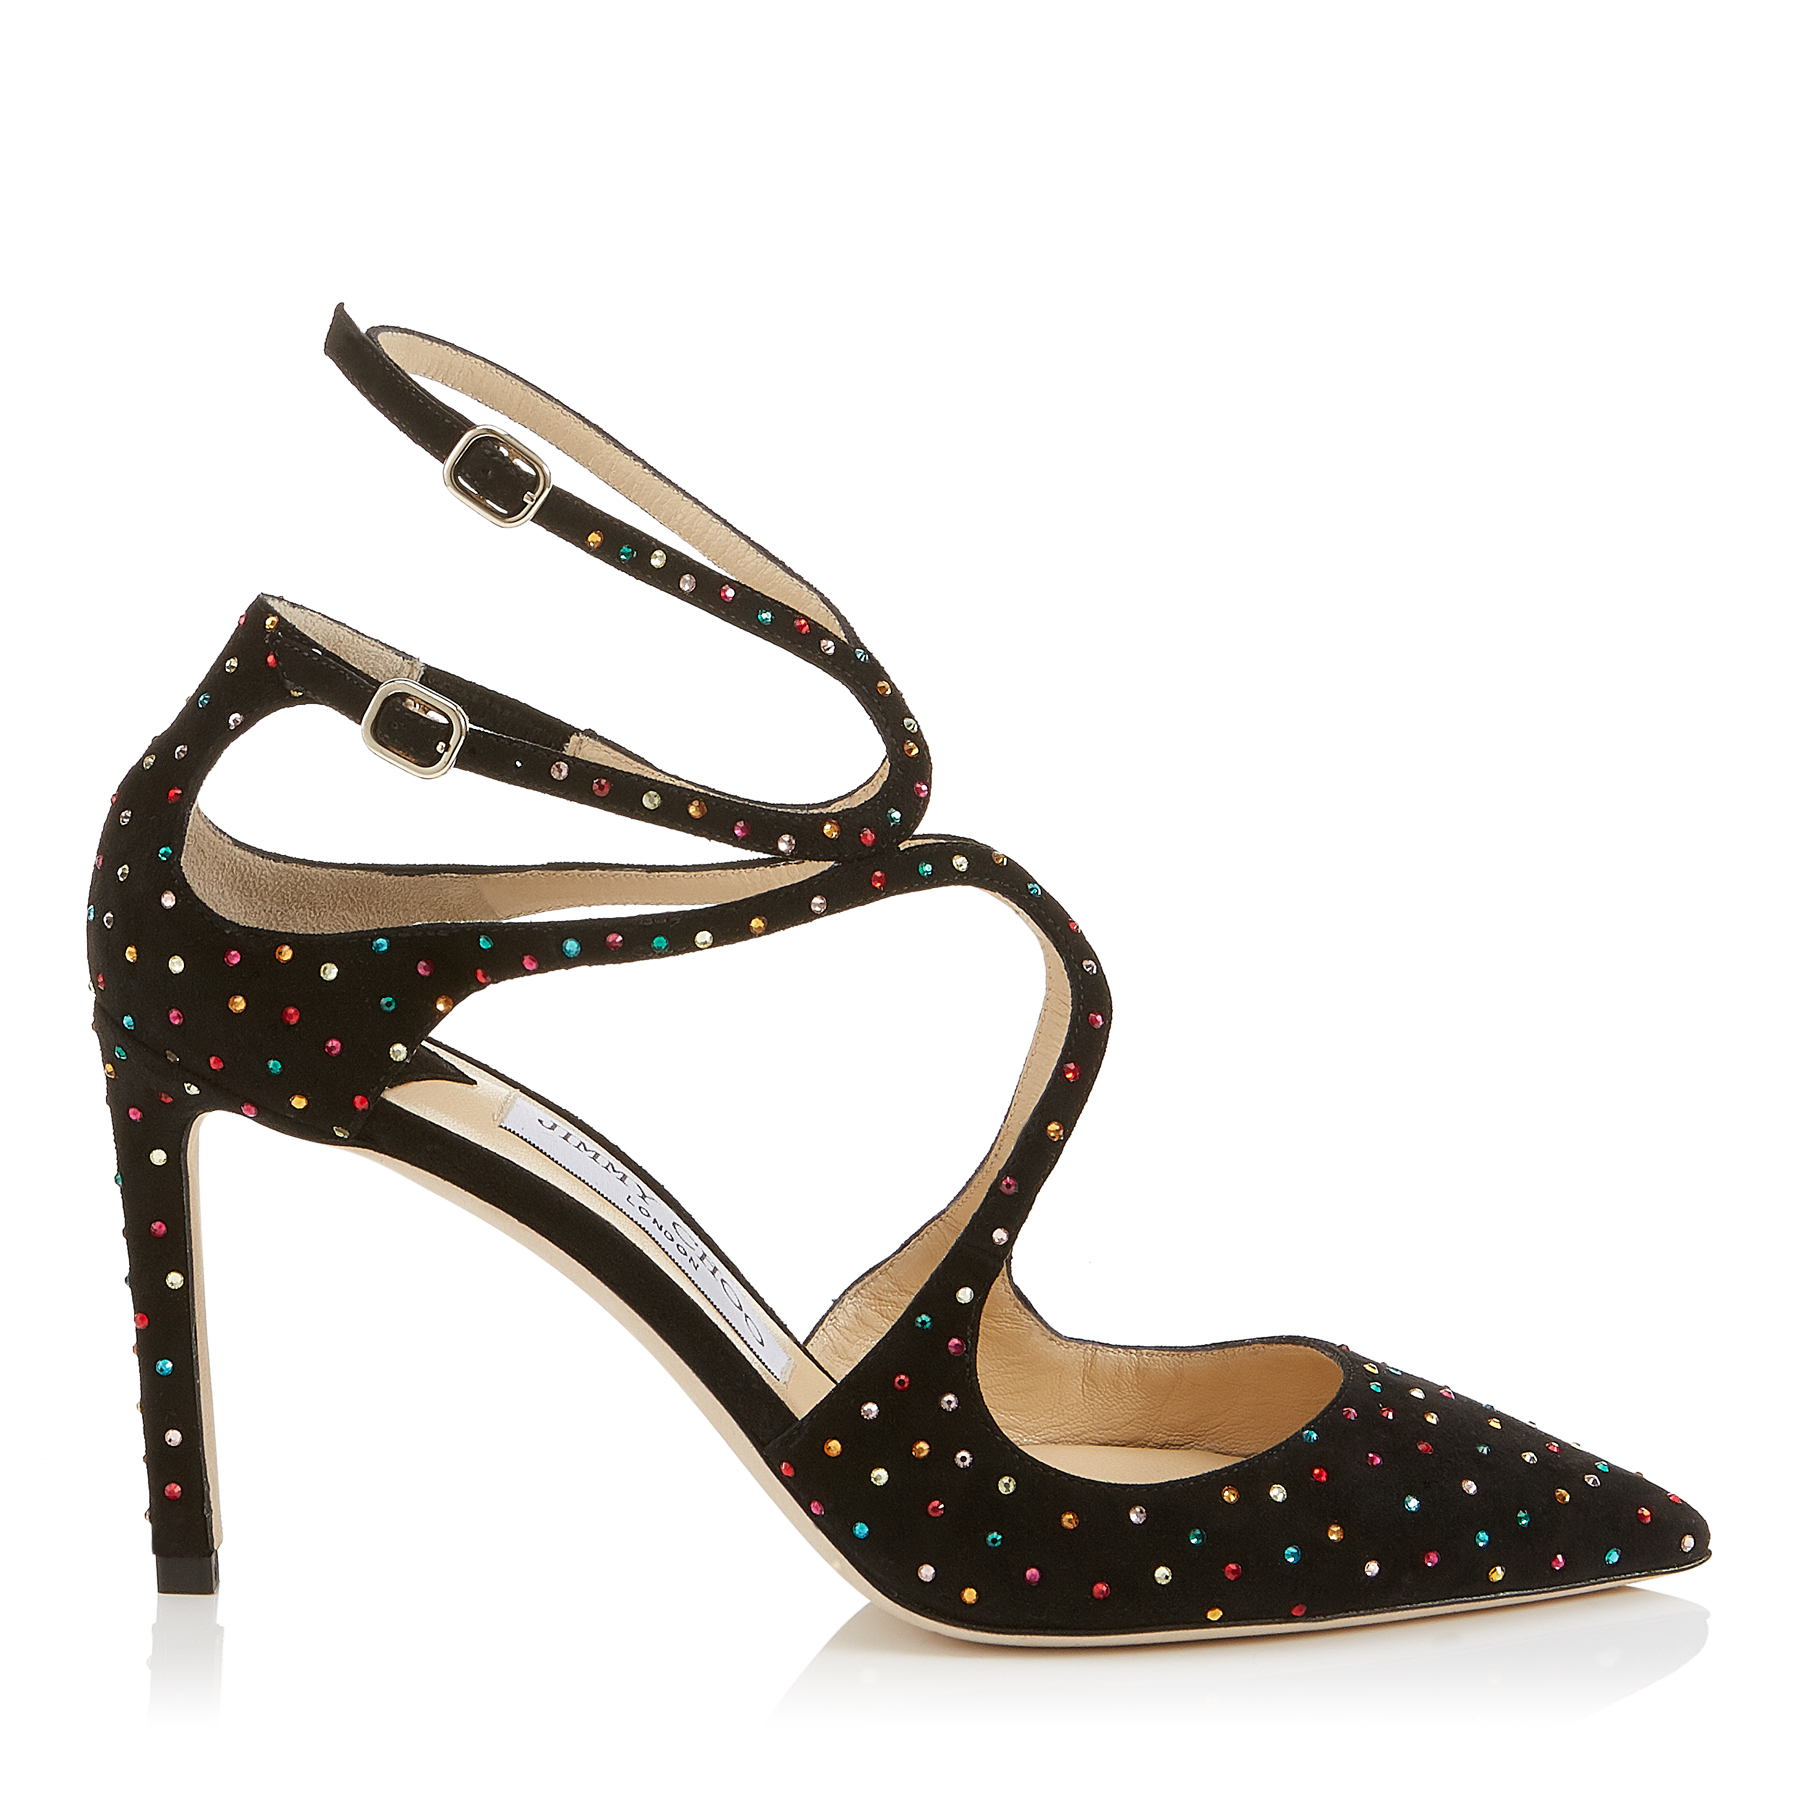 LANCER 85 Black Suede Pointy Toe Pumps with Multi Scattered Crystals by Jimmy Choo